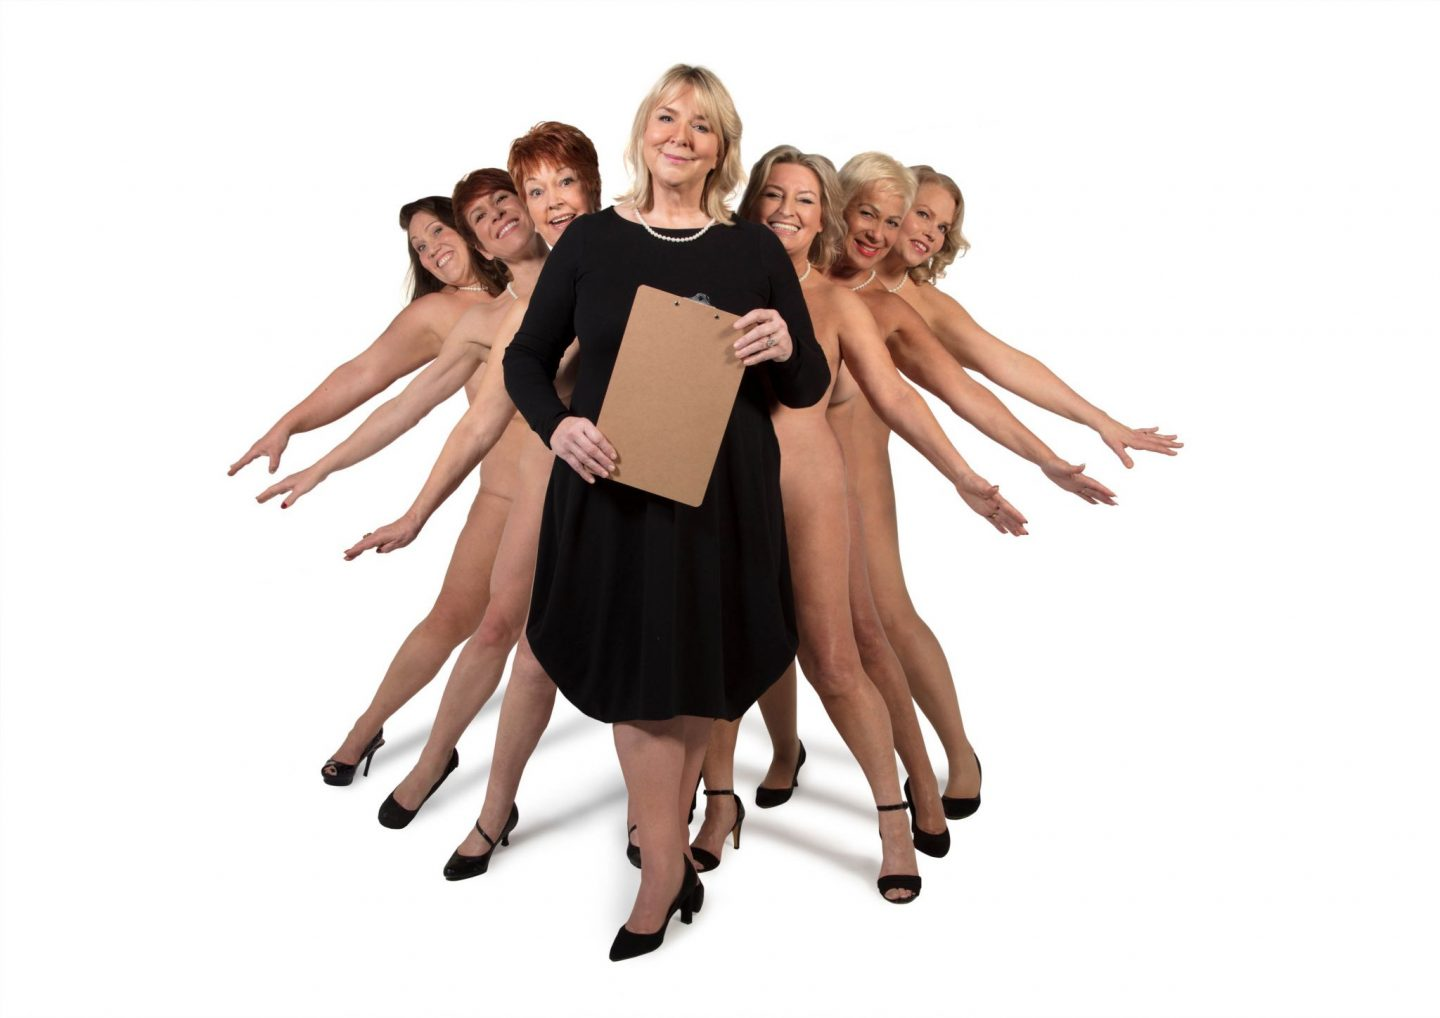 Calendar-Girls-Review-The-Regent-Theatre-StokeonTrent-Blogger-UK